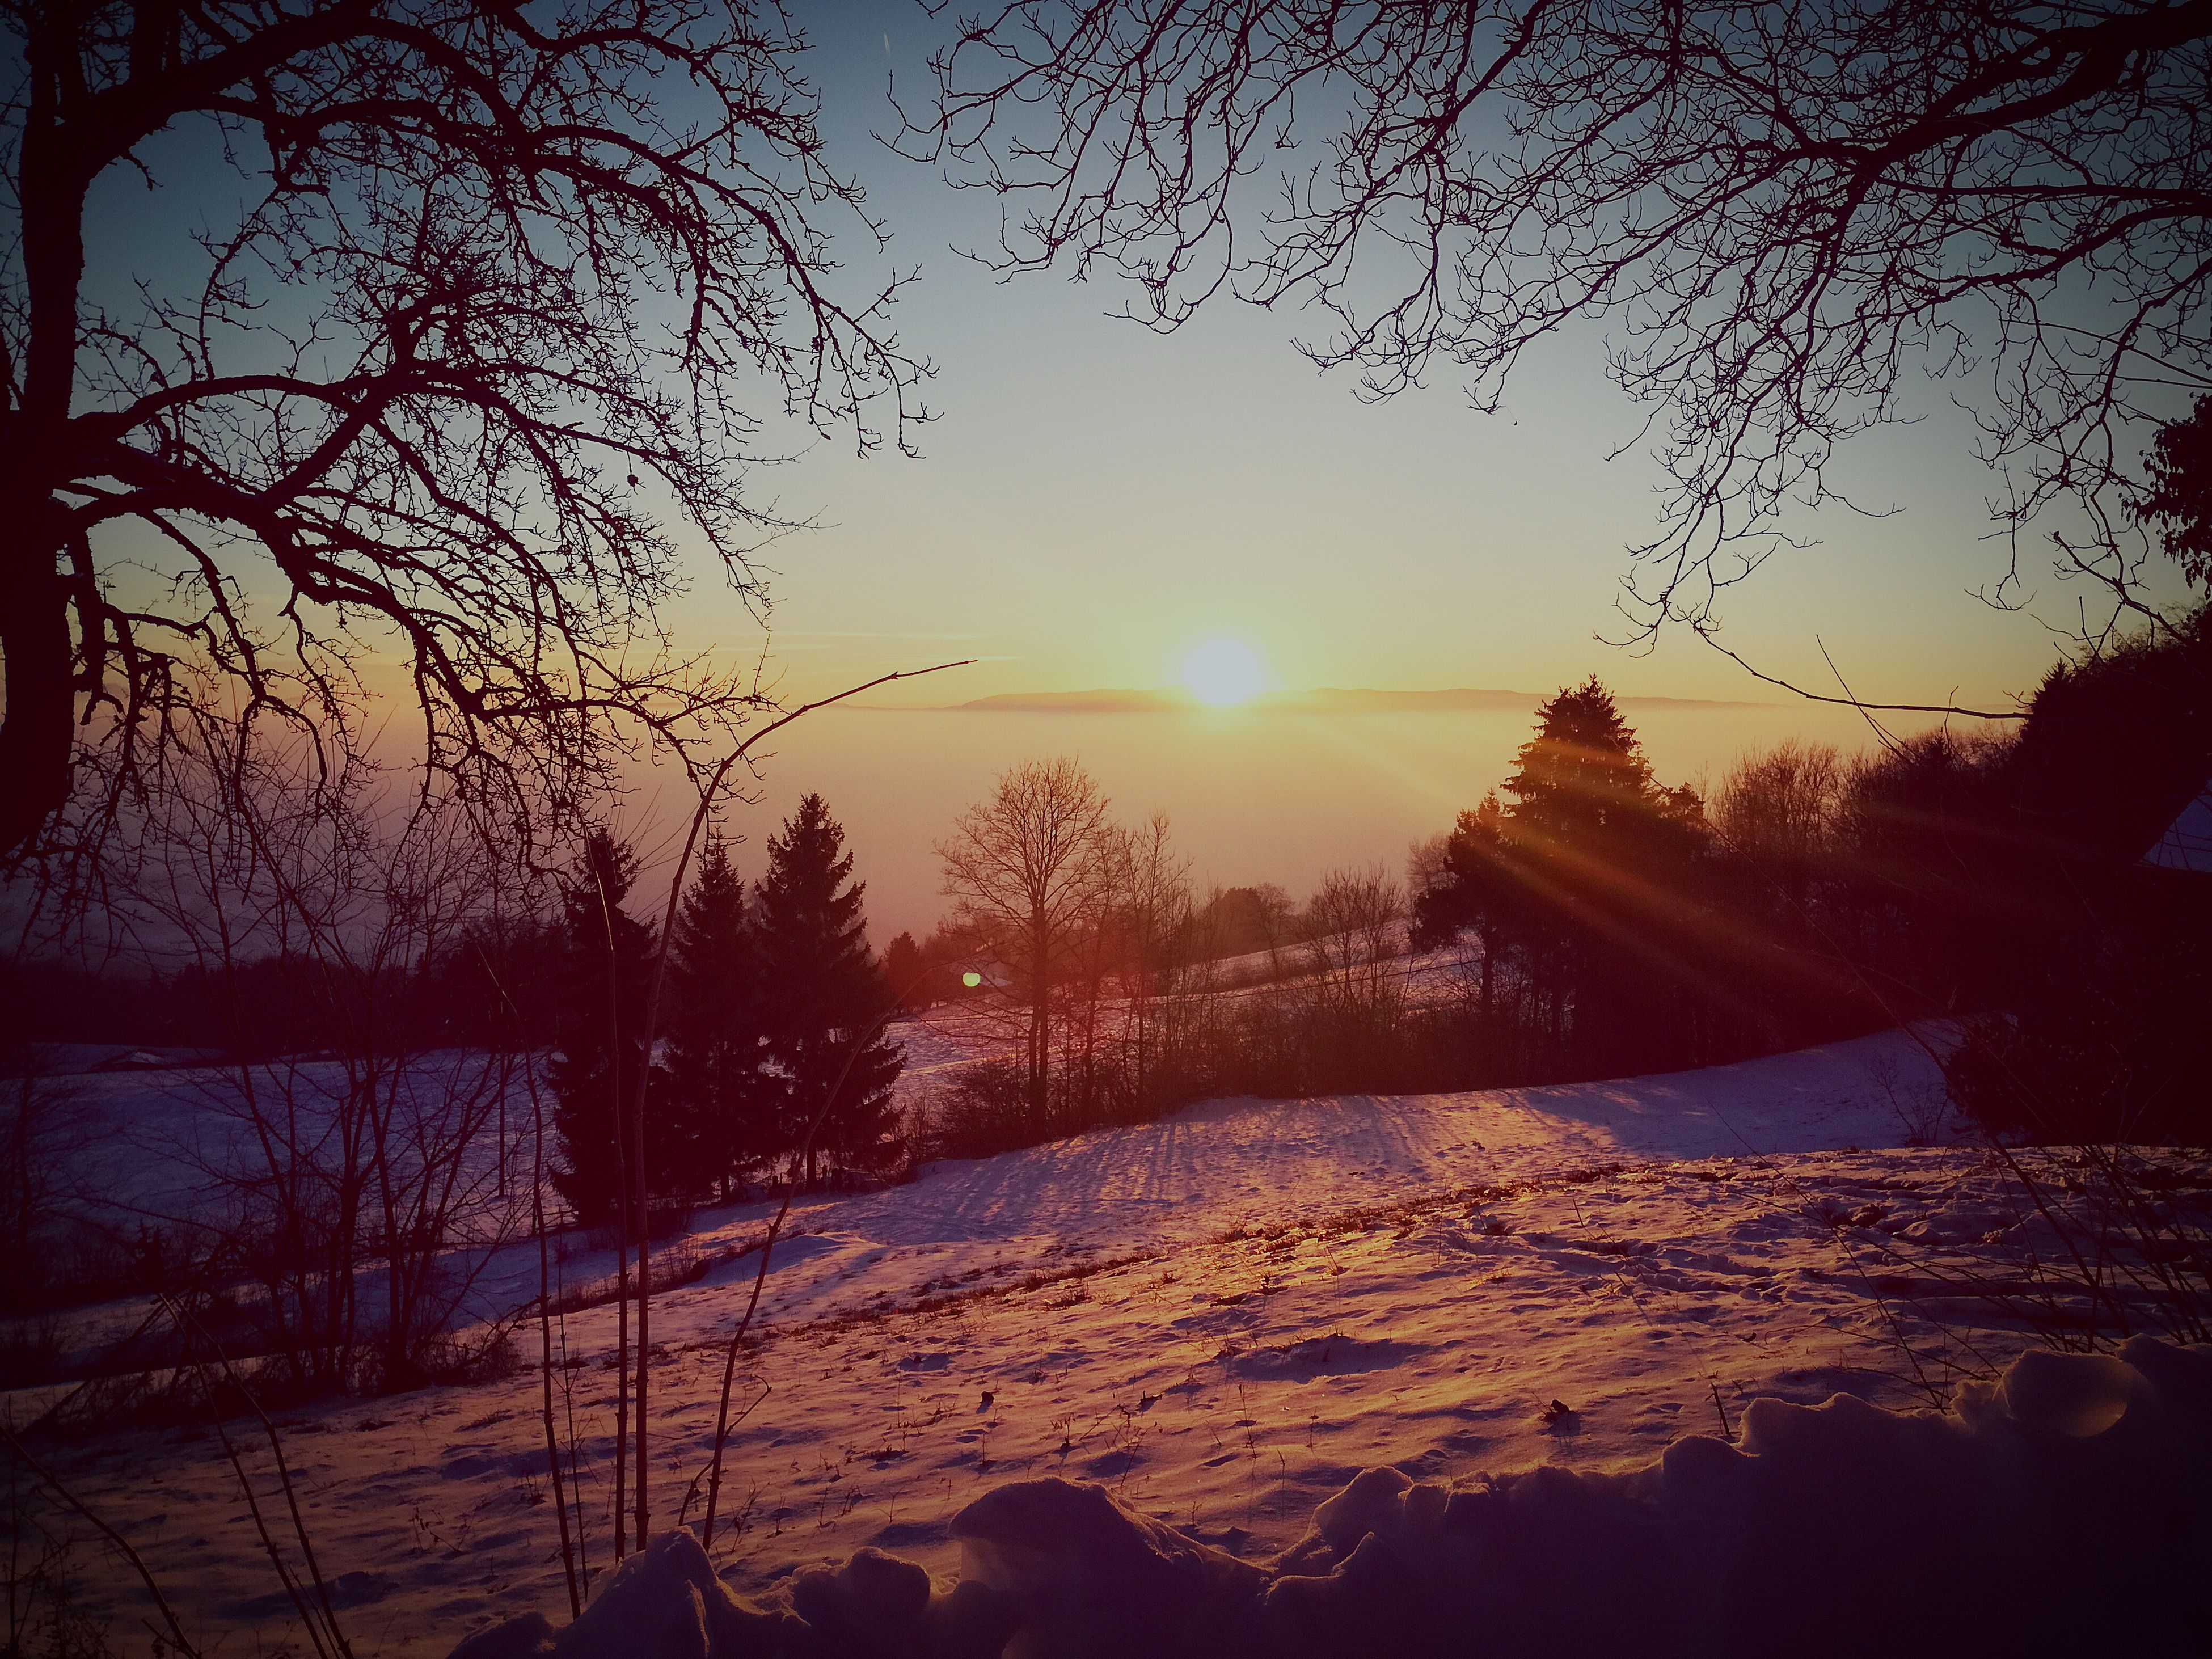 sunset, nature, beauty in nature, scenics, sky, sun, tranquil scene, water, tranquility, reflection, tree, idyllic, no people, sunlight, outdoors, silhouette, cold temperature, landscape, day